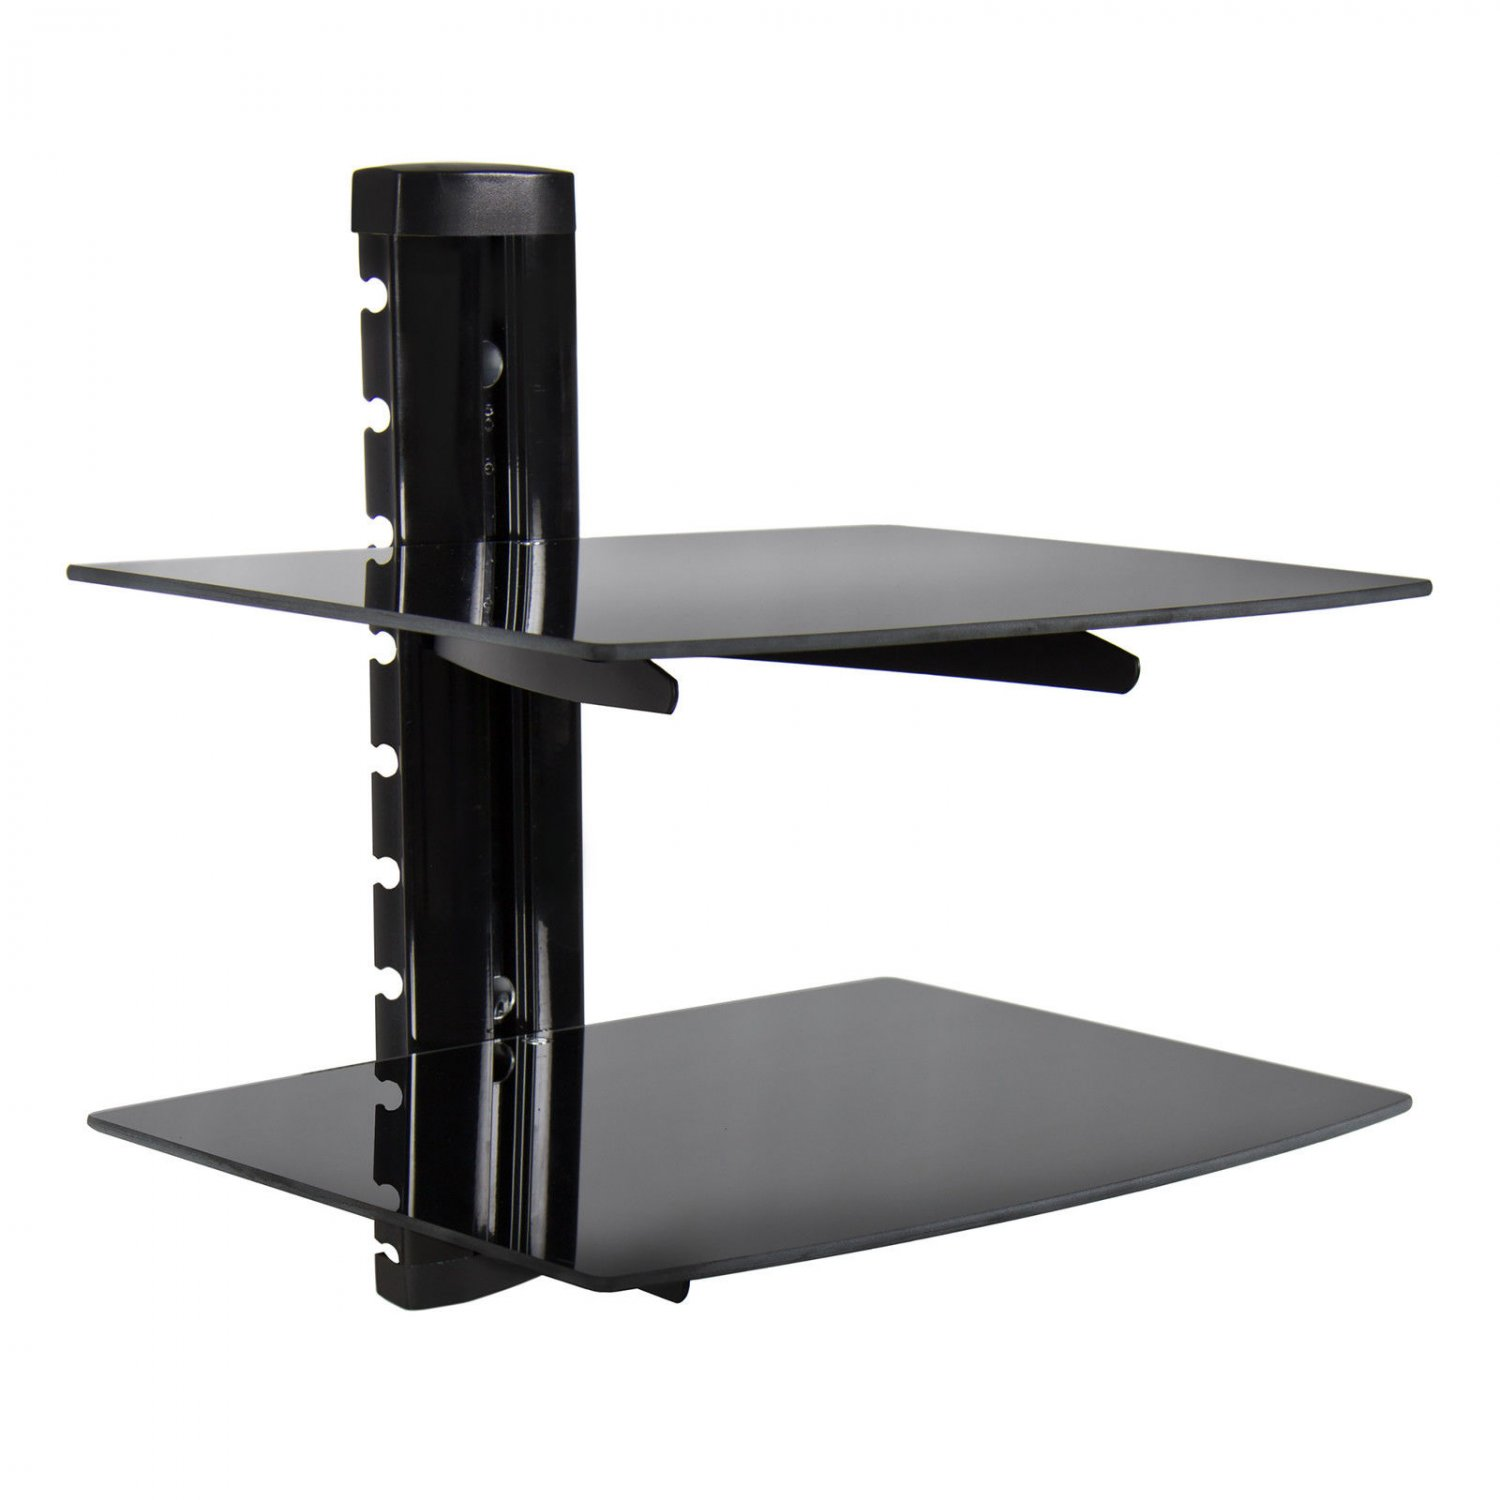 Shelves To Go Under Wall Mounted Tv 2 Tier Dual Glass Shelf Wall Mount Bracket Under Tv